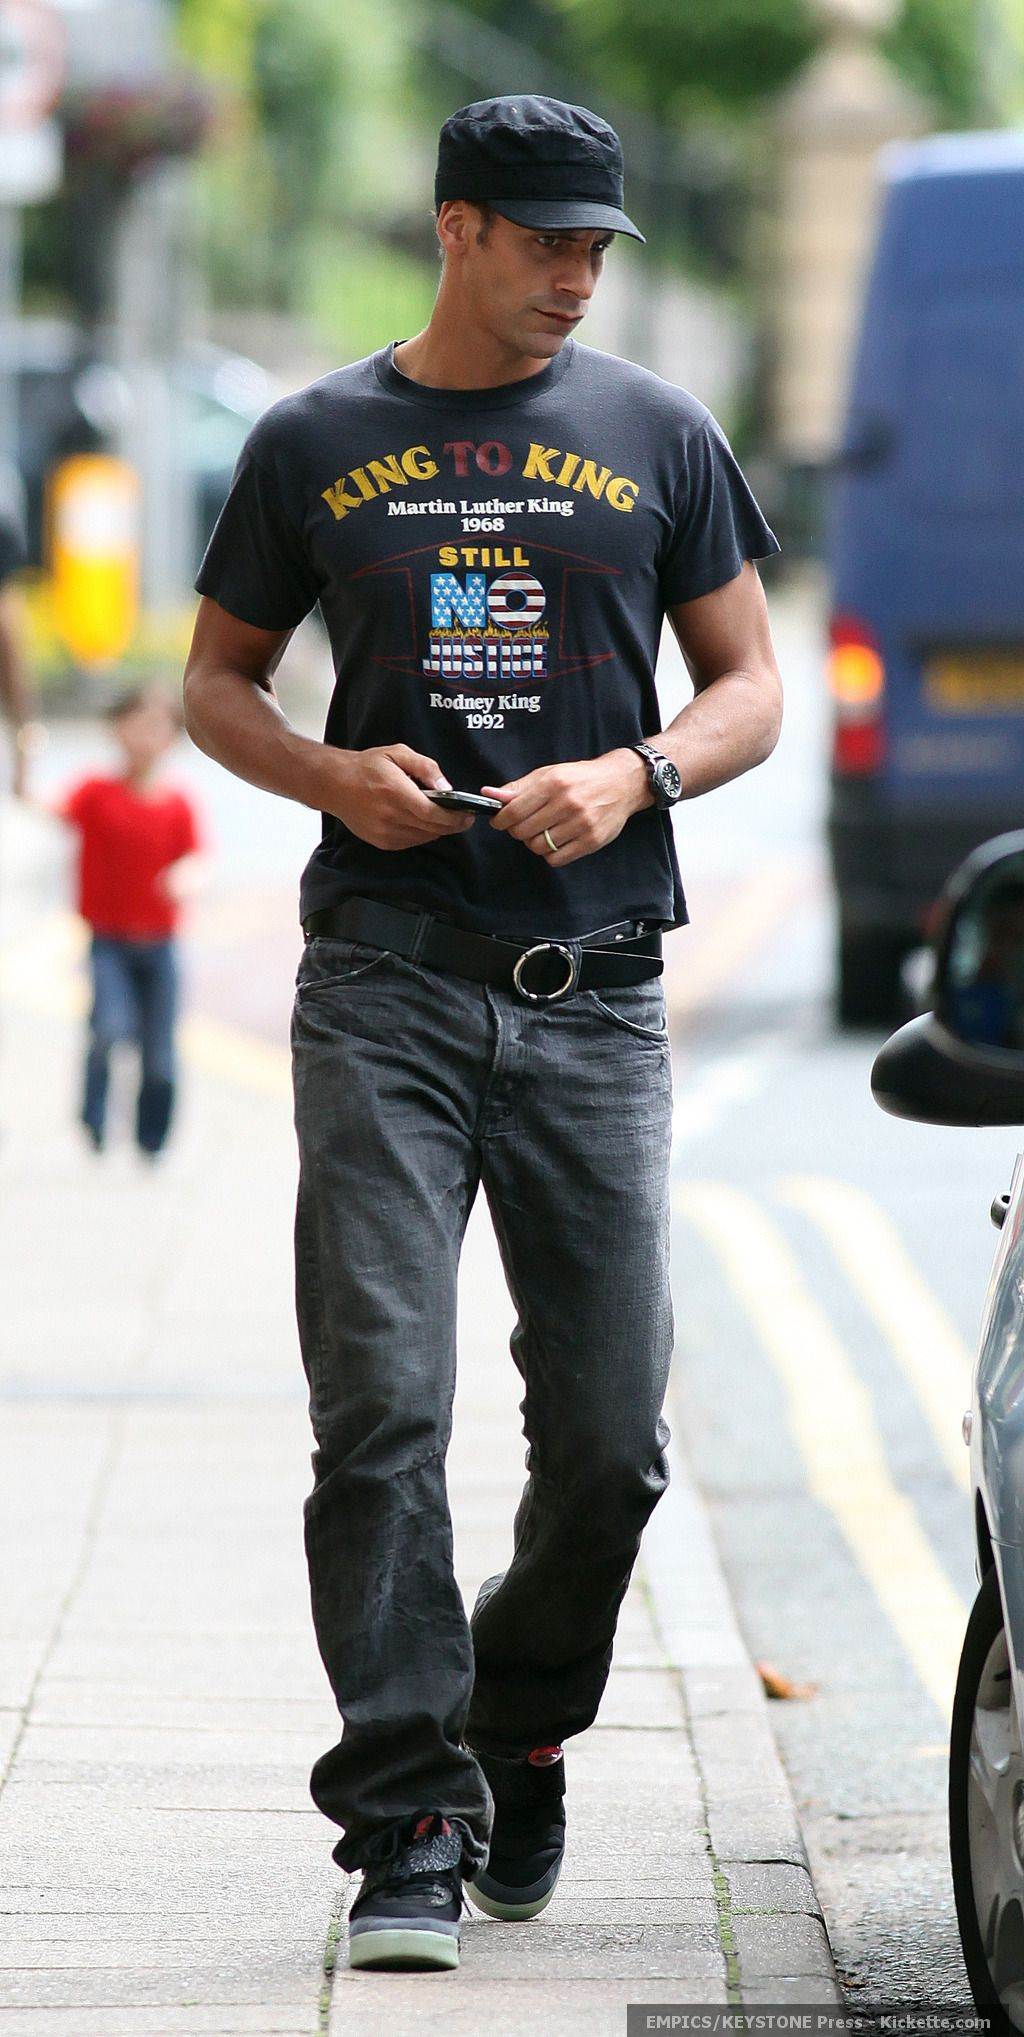 This is manchester united soccer player rio ferdinand he is